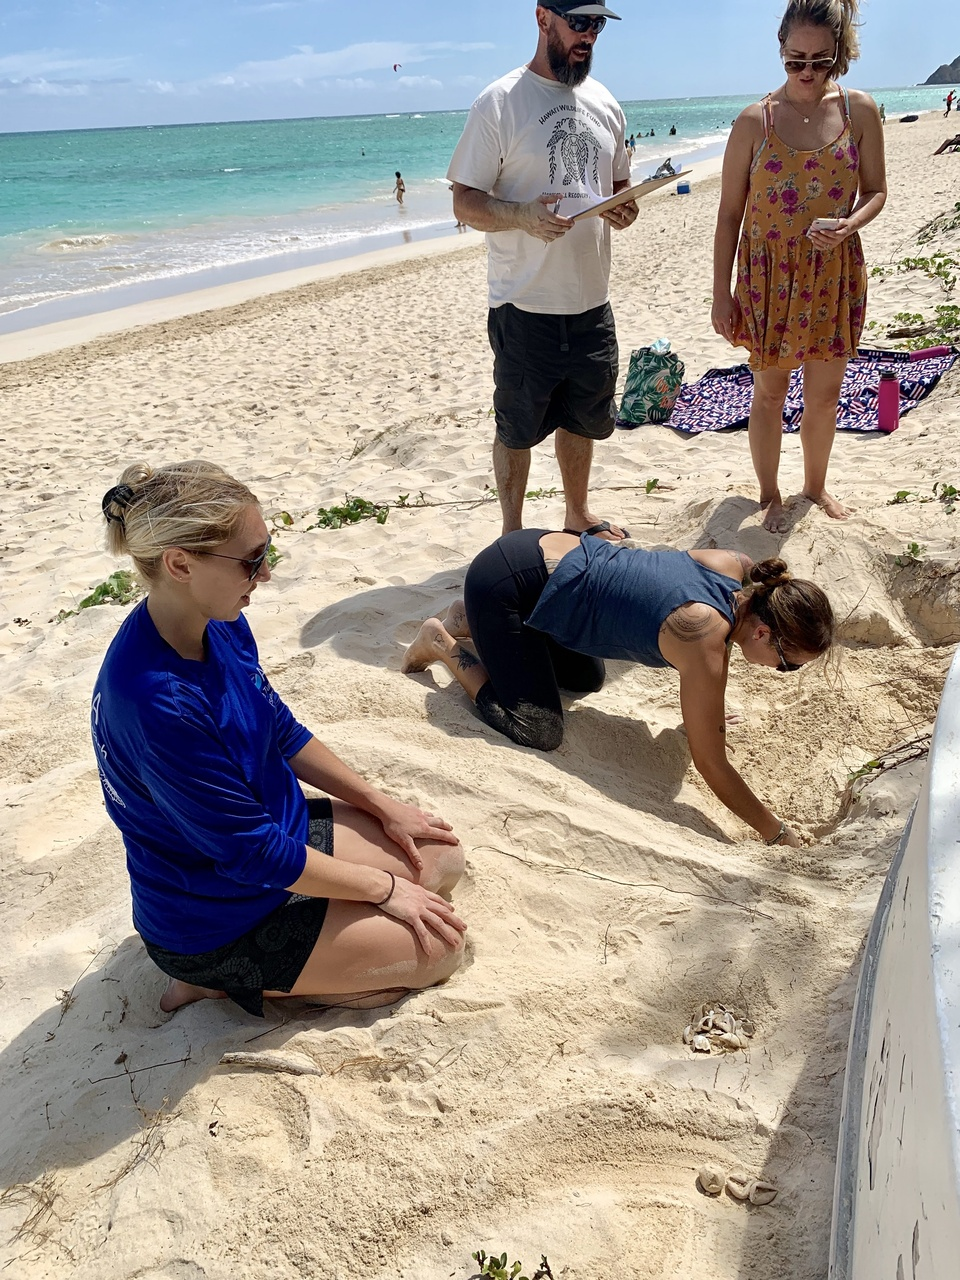 Sea turtle biologists excavate nest in sand.